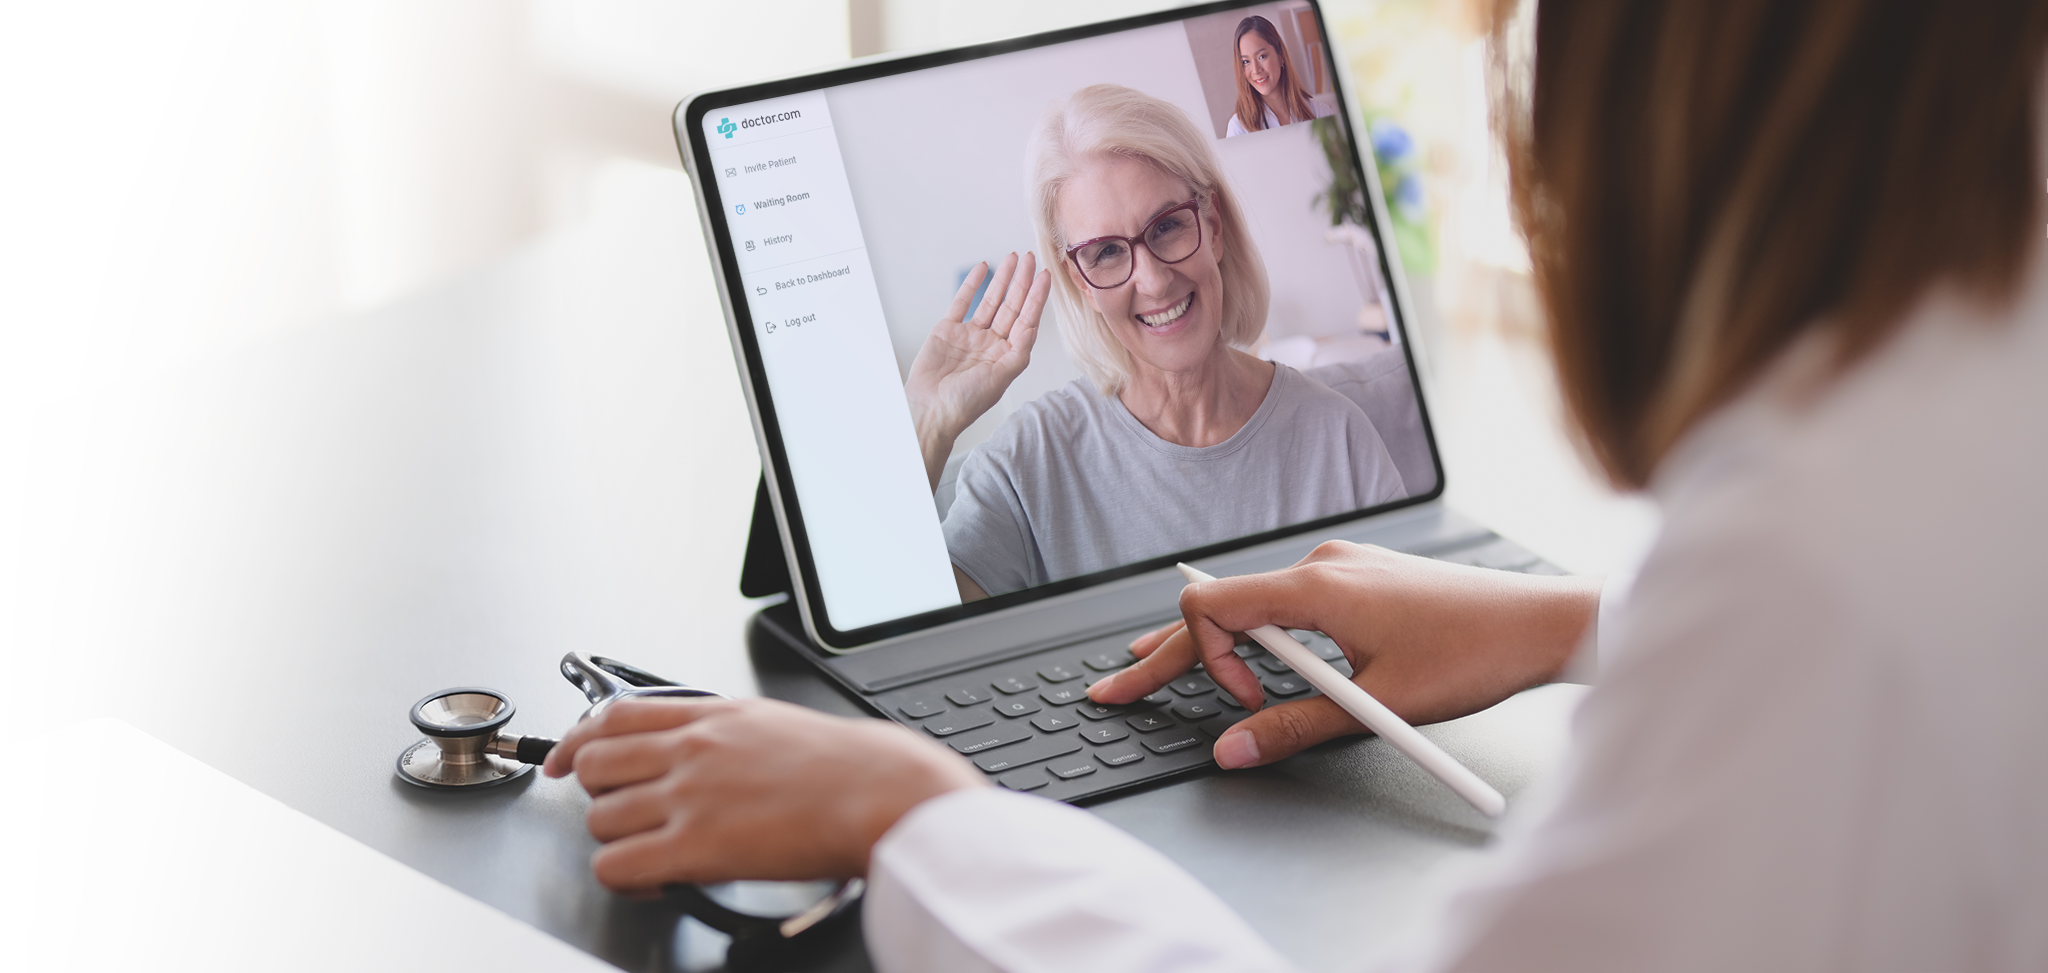 Doctor interacting with a patient via VirtualVisit app on a notebook